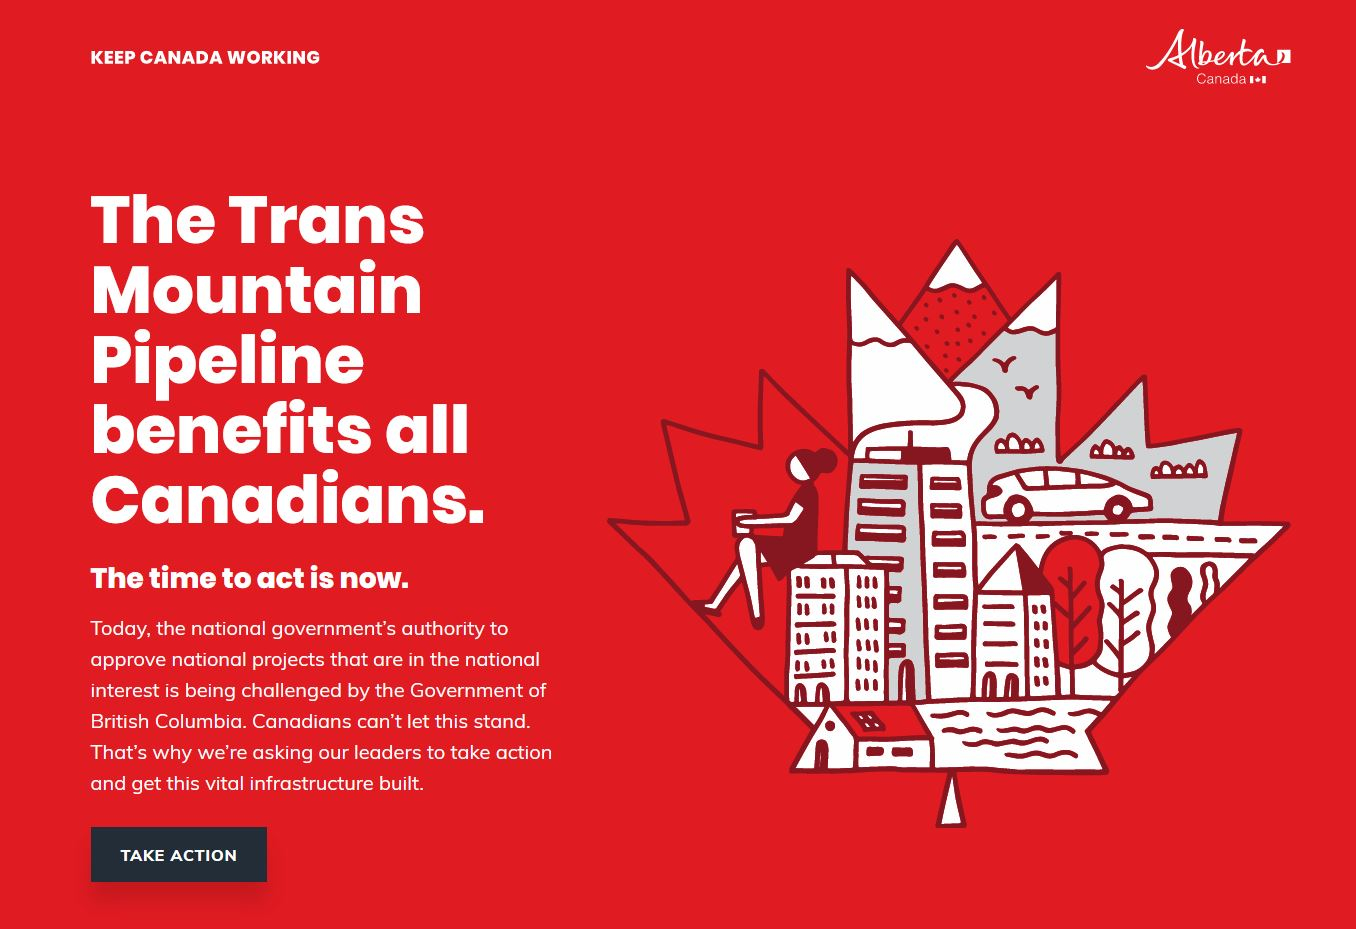 Alberta government displaying billboards across BC supporting Trans Mountain Pipeline